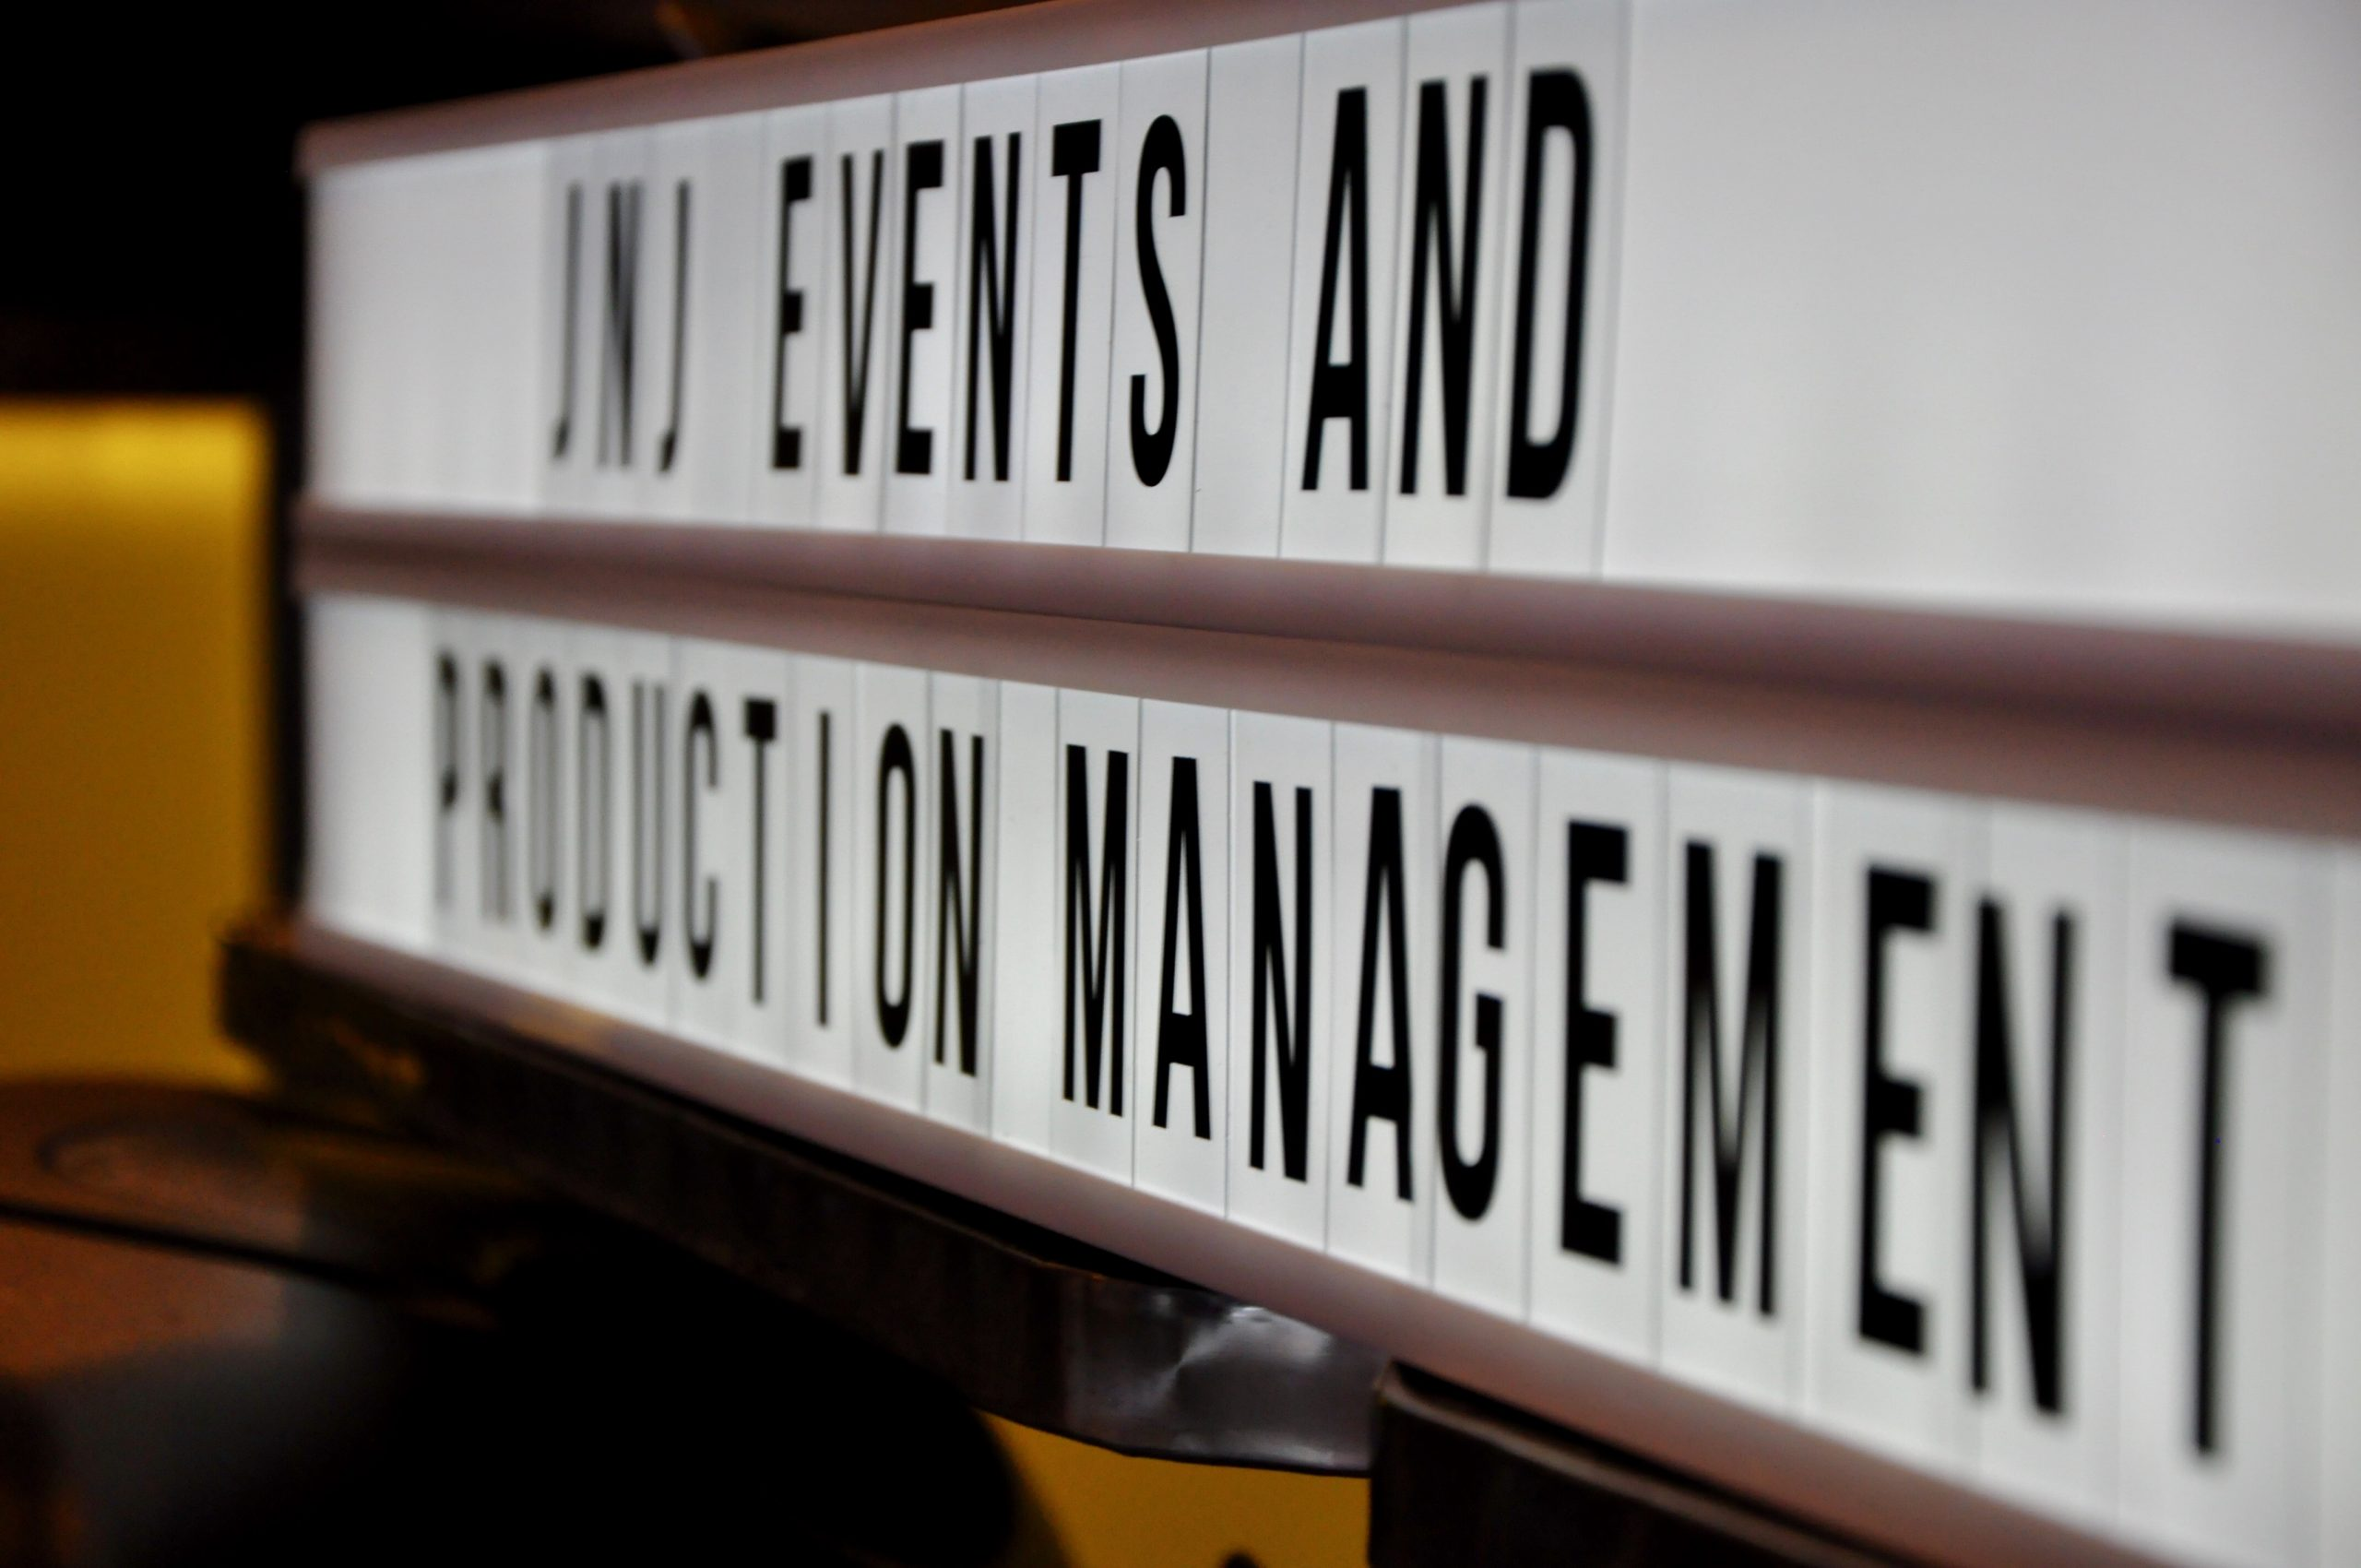 About JNJ Events and Production Management